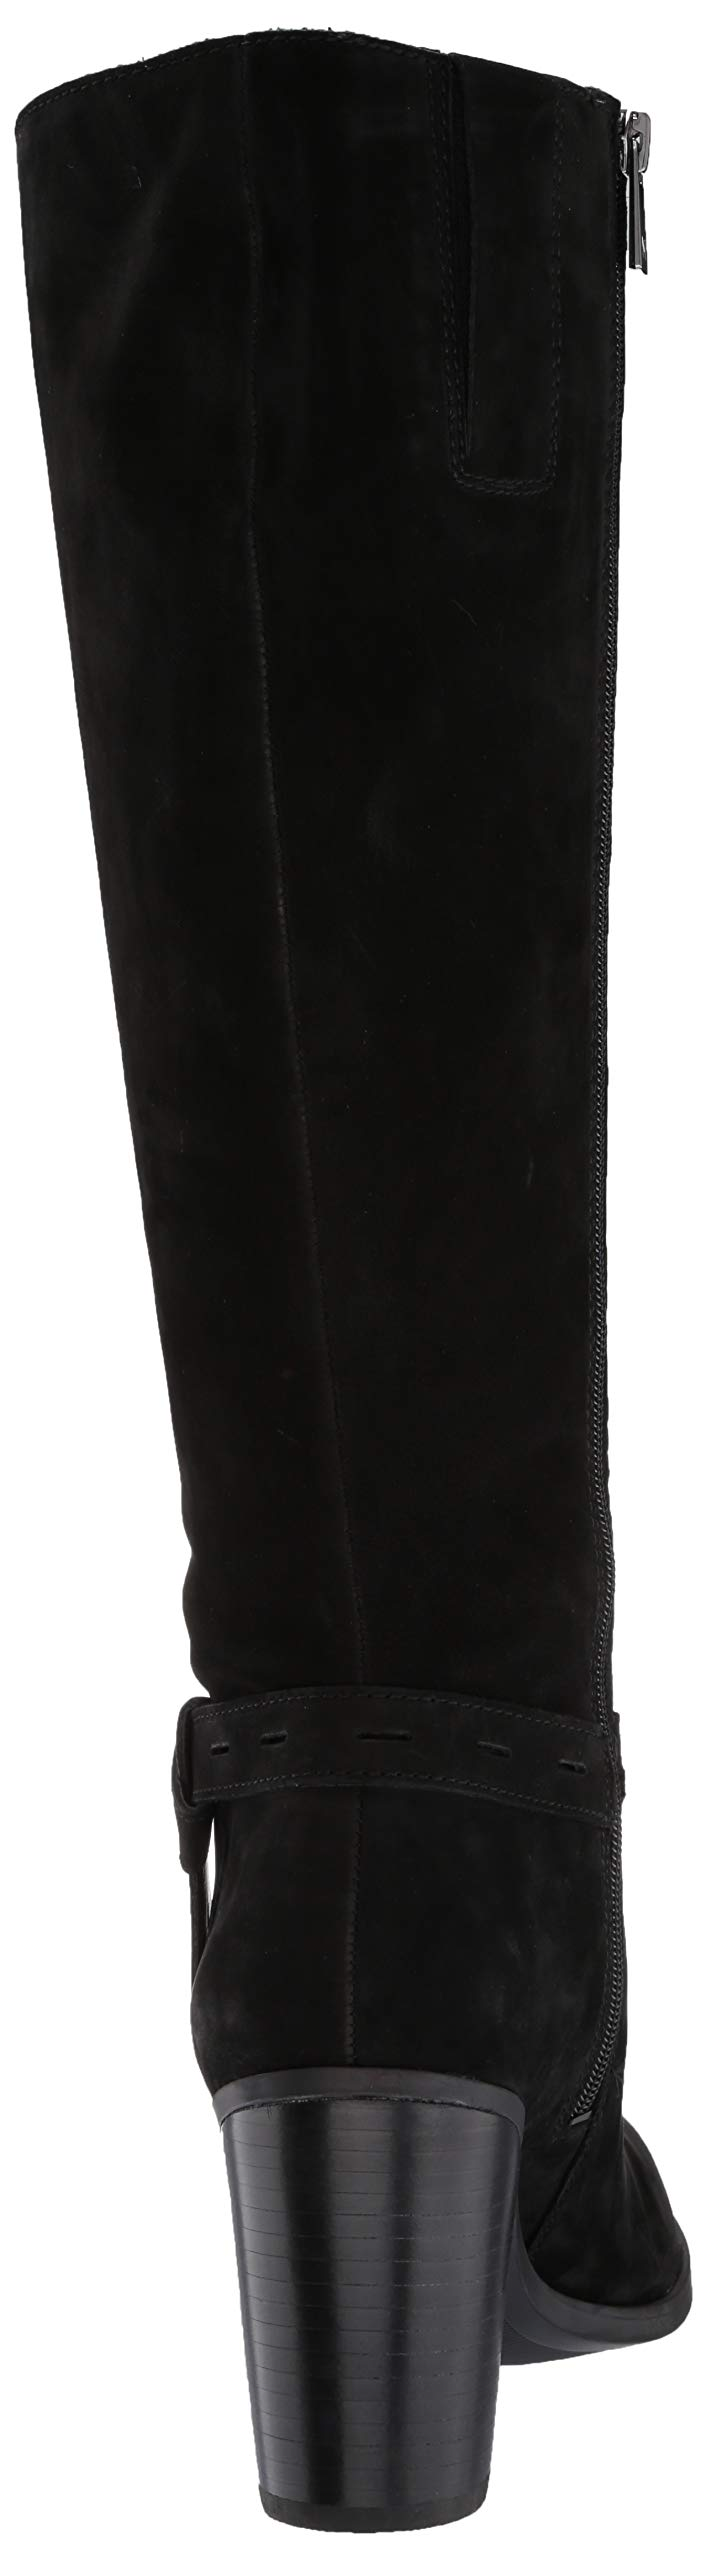 Naturalizer Women's Kamora High Shaft Knee Boot